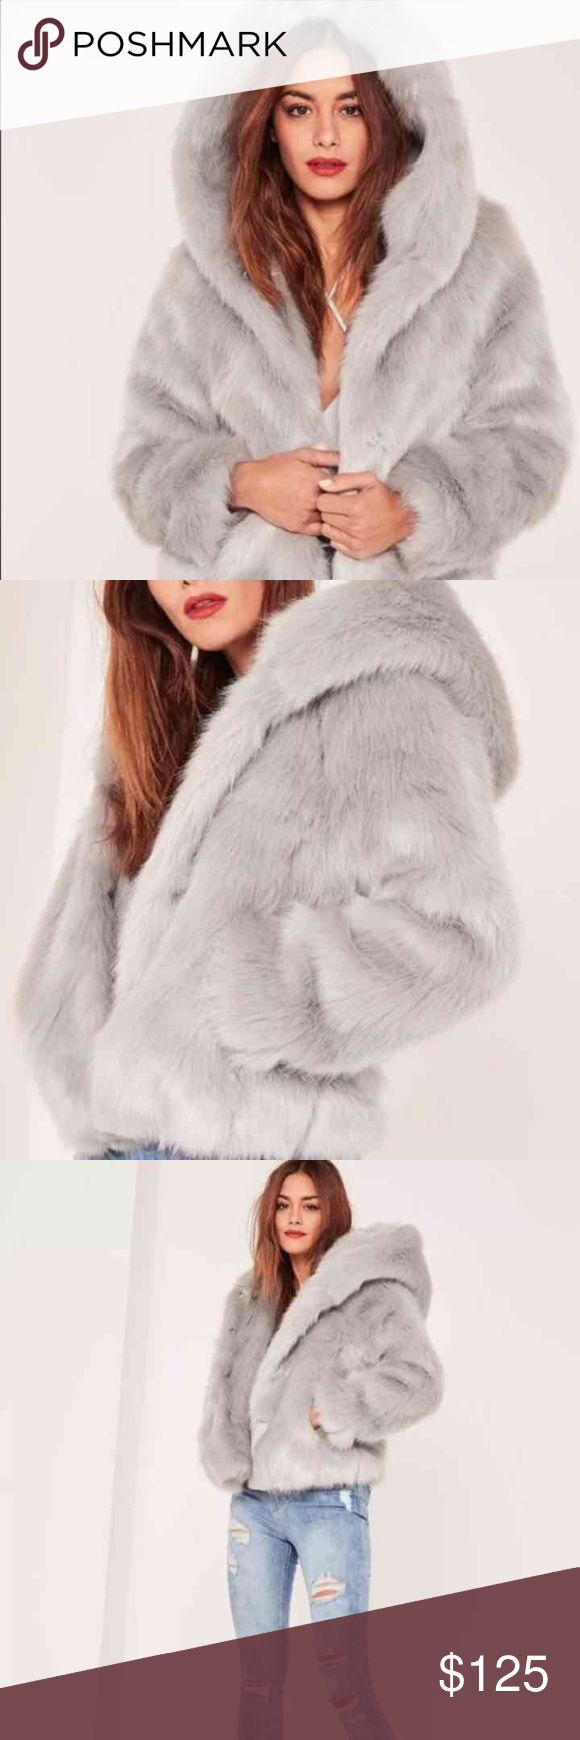 Faux fur hooded jacket Misguided Caroline Receveur faux fur hooded jacket. Sold out. Gray. NWT. Size 6. Oversized fit. Missguided Jackets & Coats